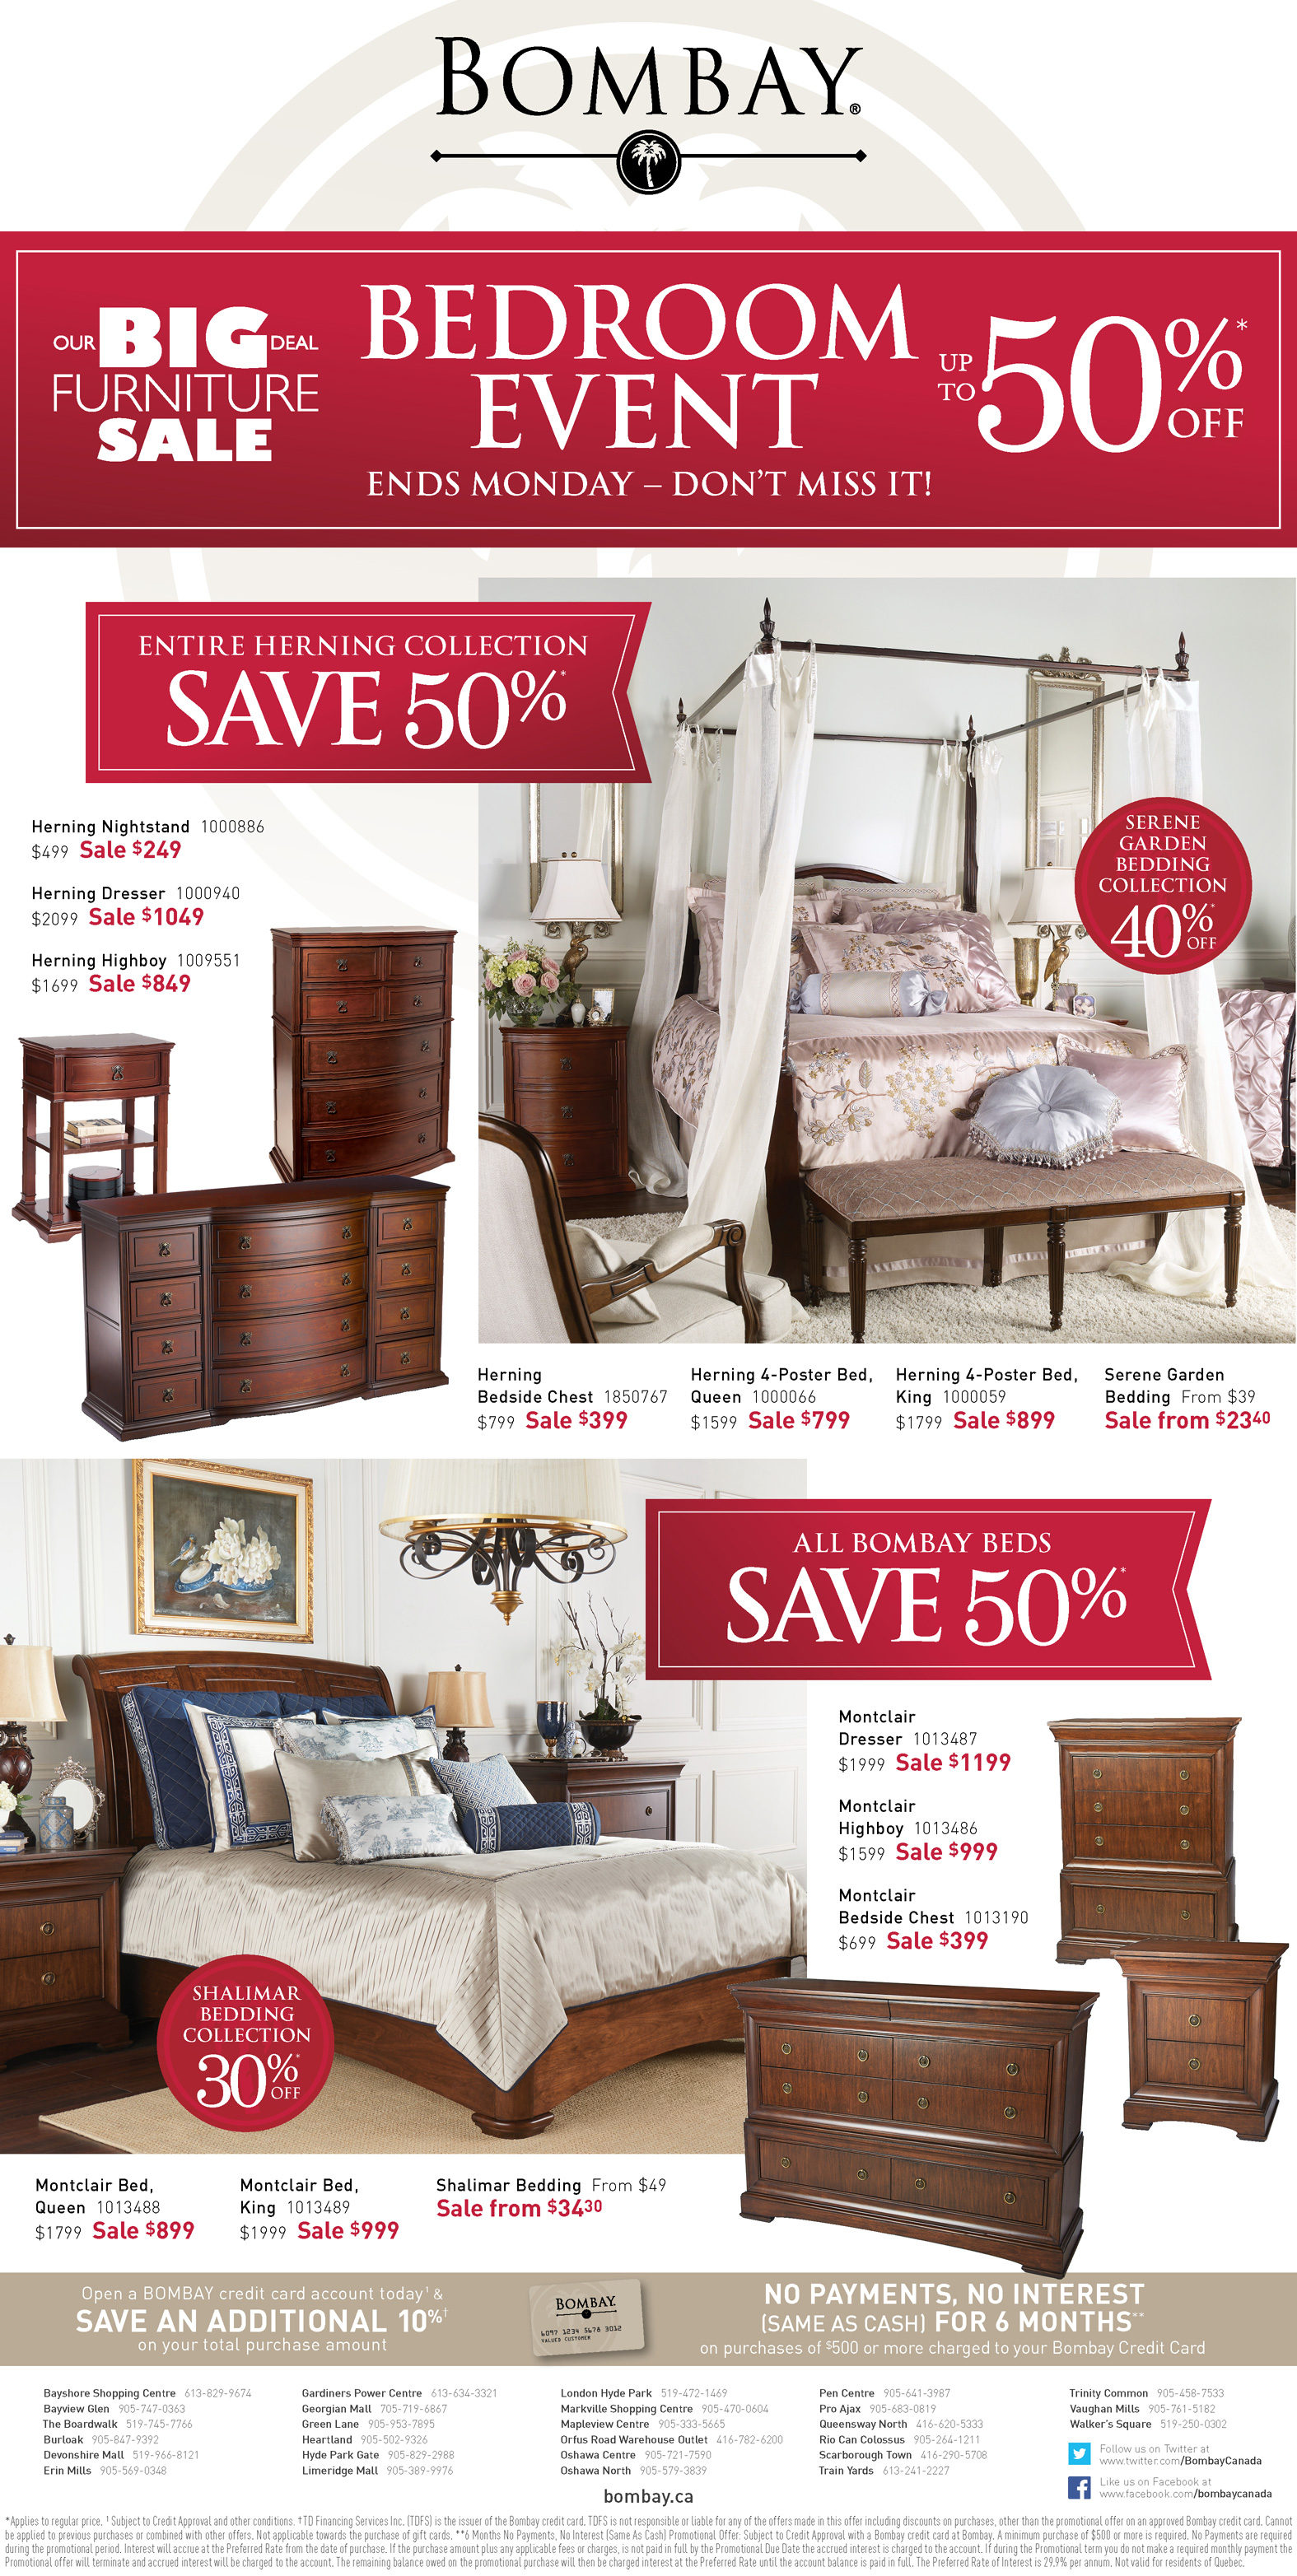 Bombay Weekly Flyer - Our Big Deal Furniture Sale - Bedroom Event ...